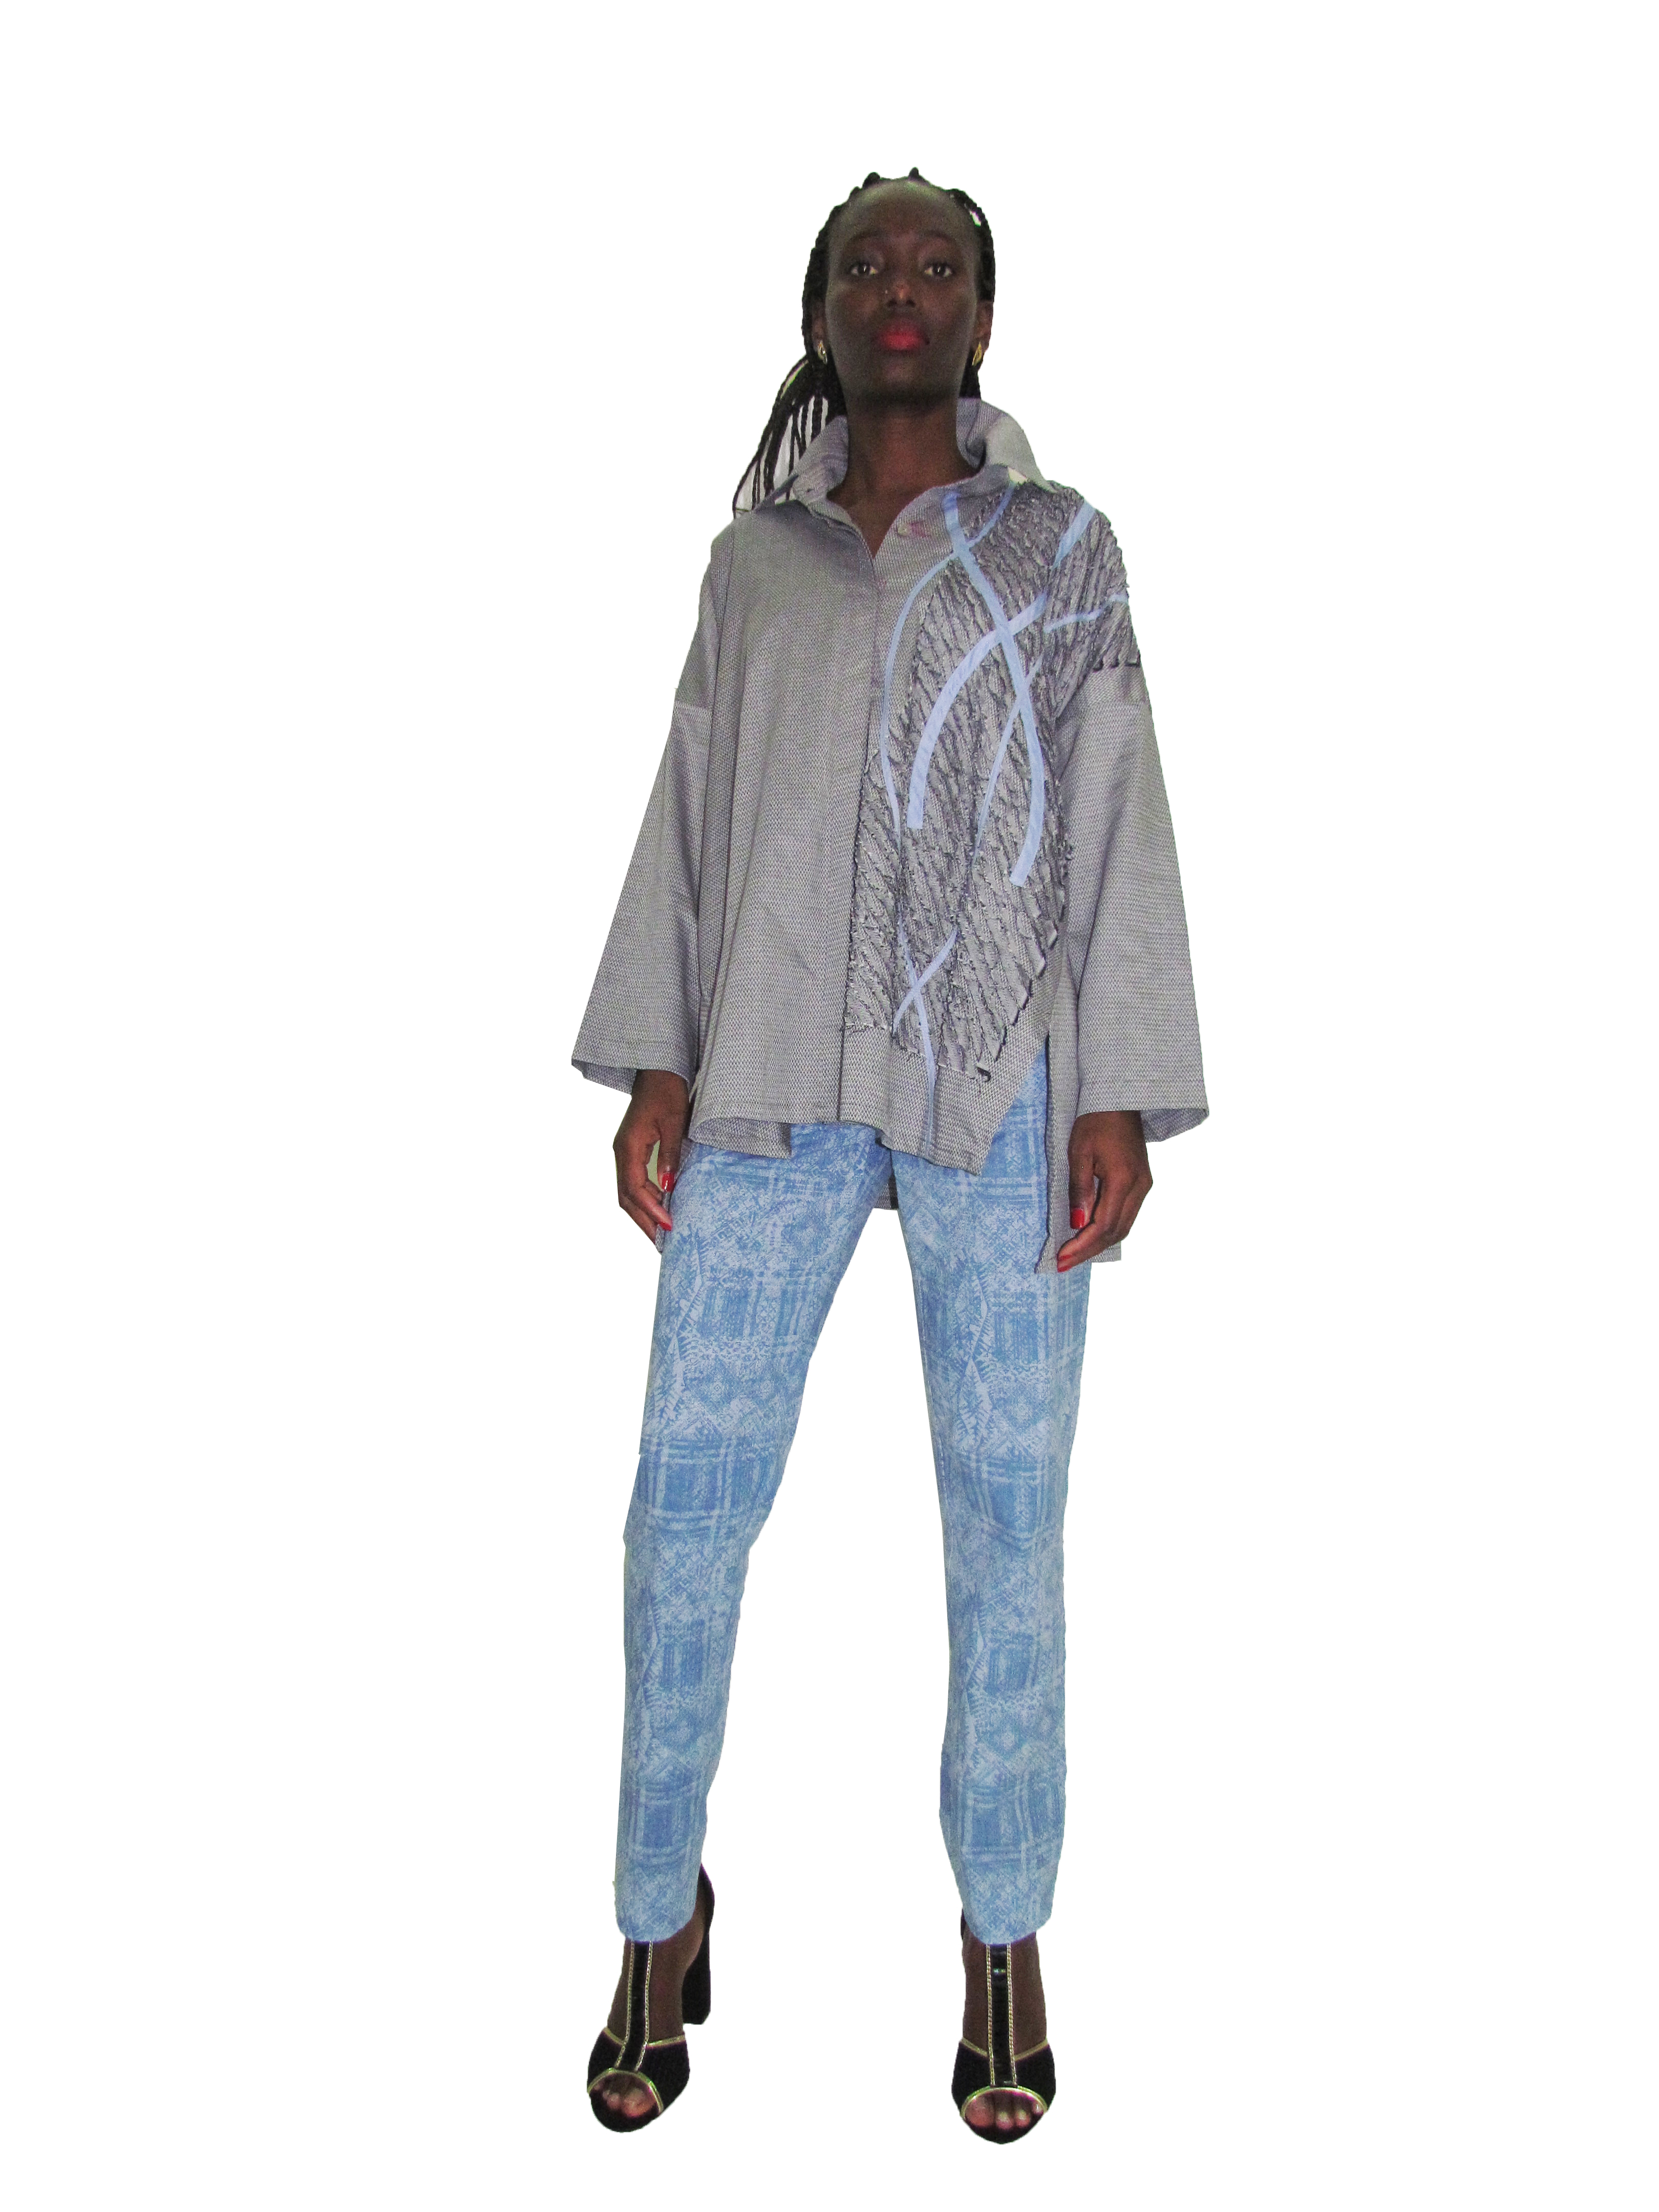 SP 1729 - Collaged Oversized Shirt | SP 1730 - Skinny Pants